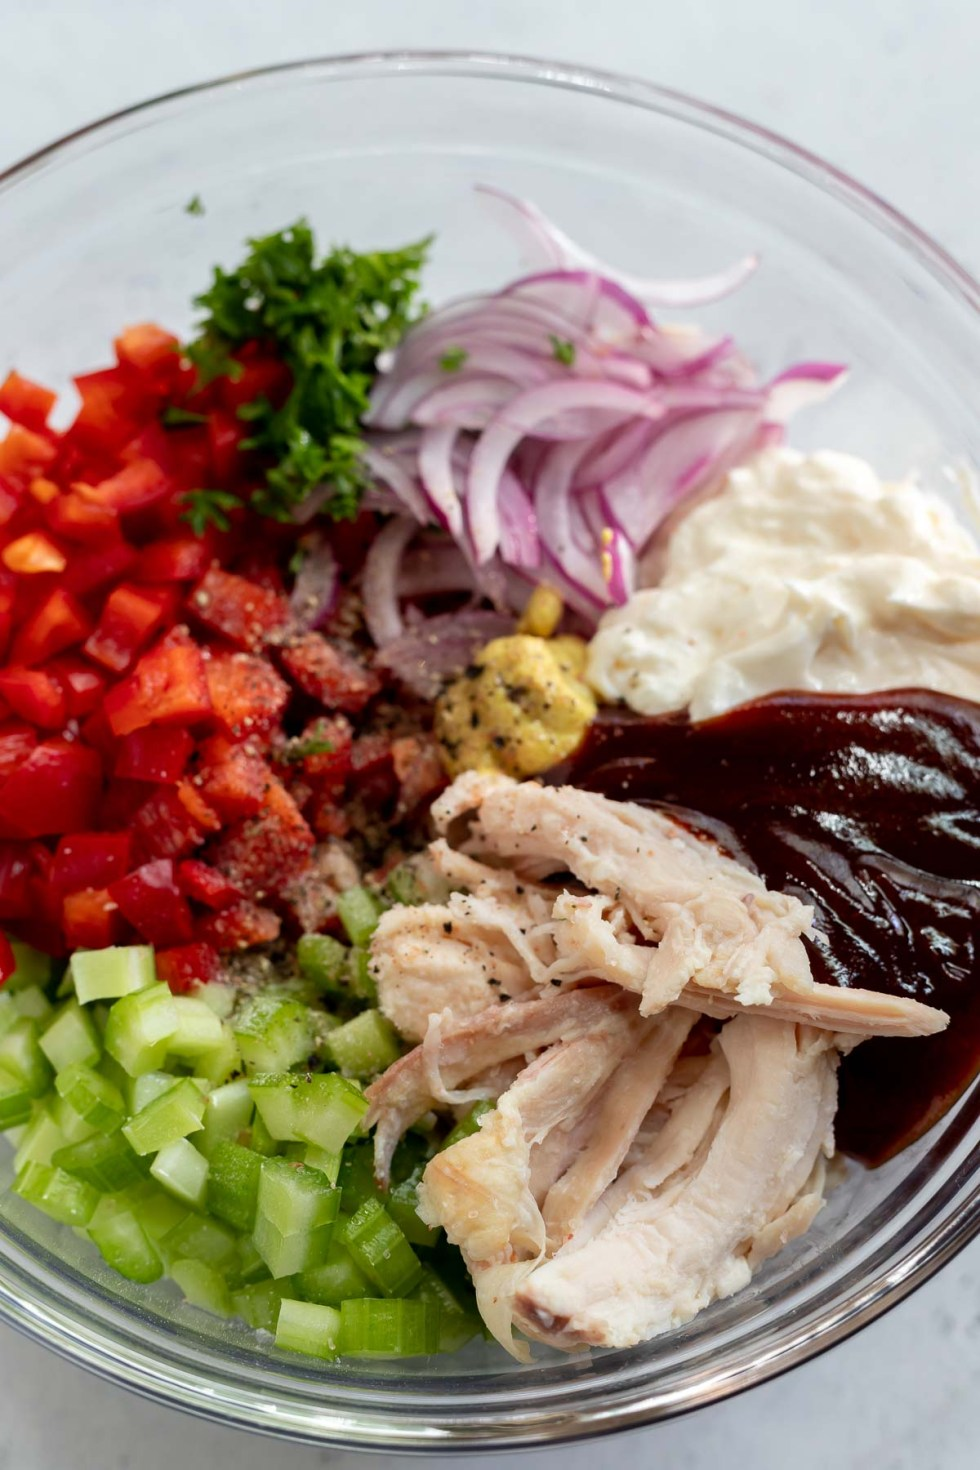 barbecue chicken salad ingredients in clear glass bowl